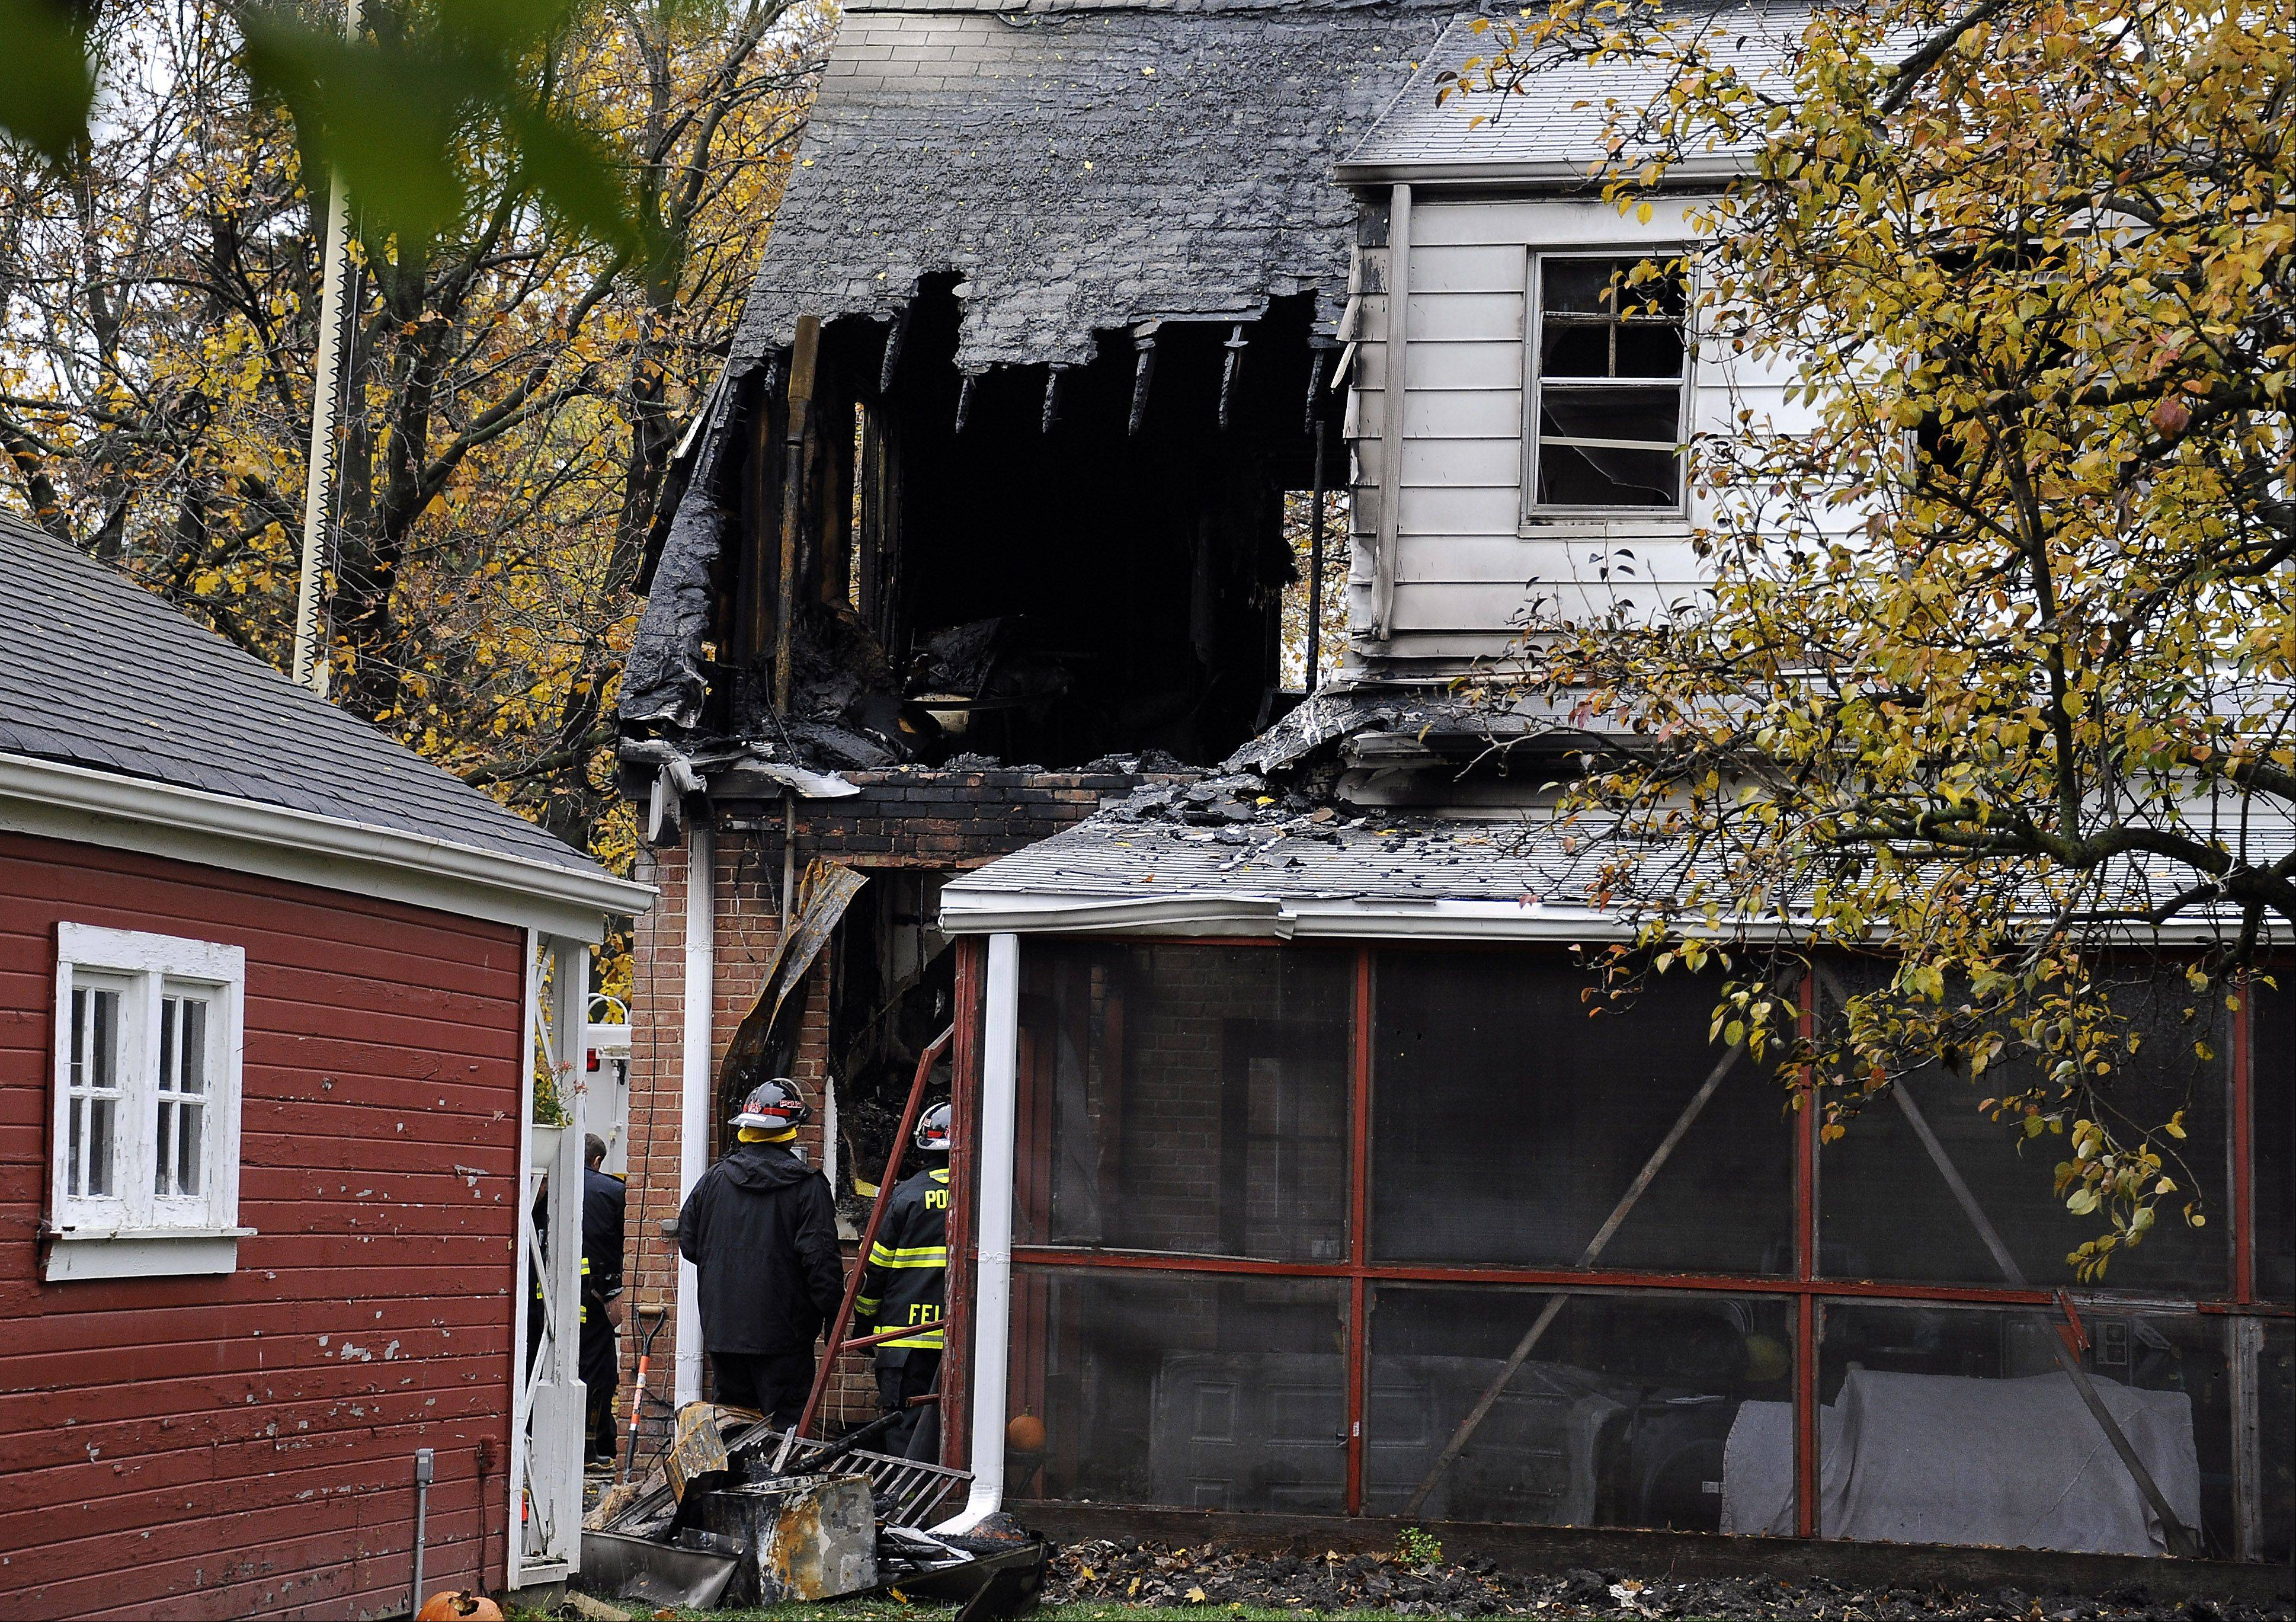 Fire deaths renew call to maintain smoke detectors